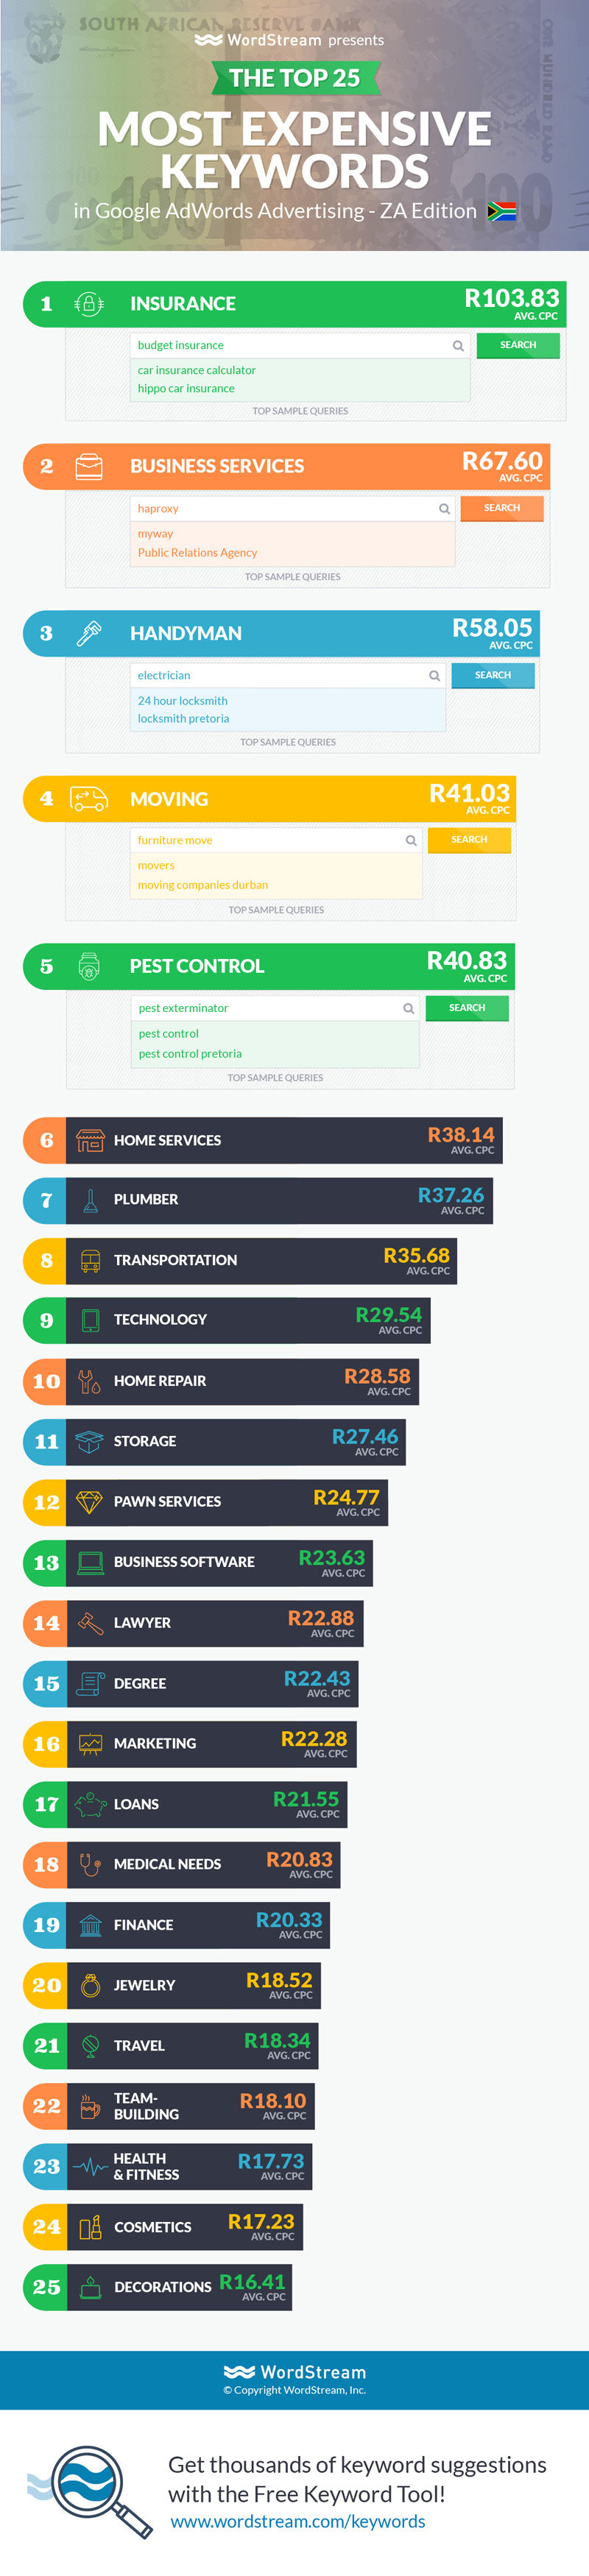 South African Keyword Cost